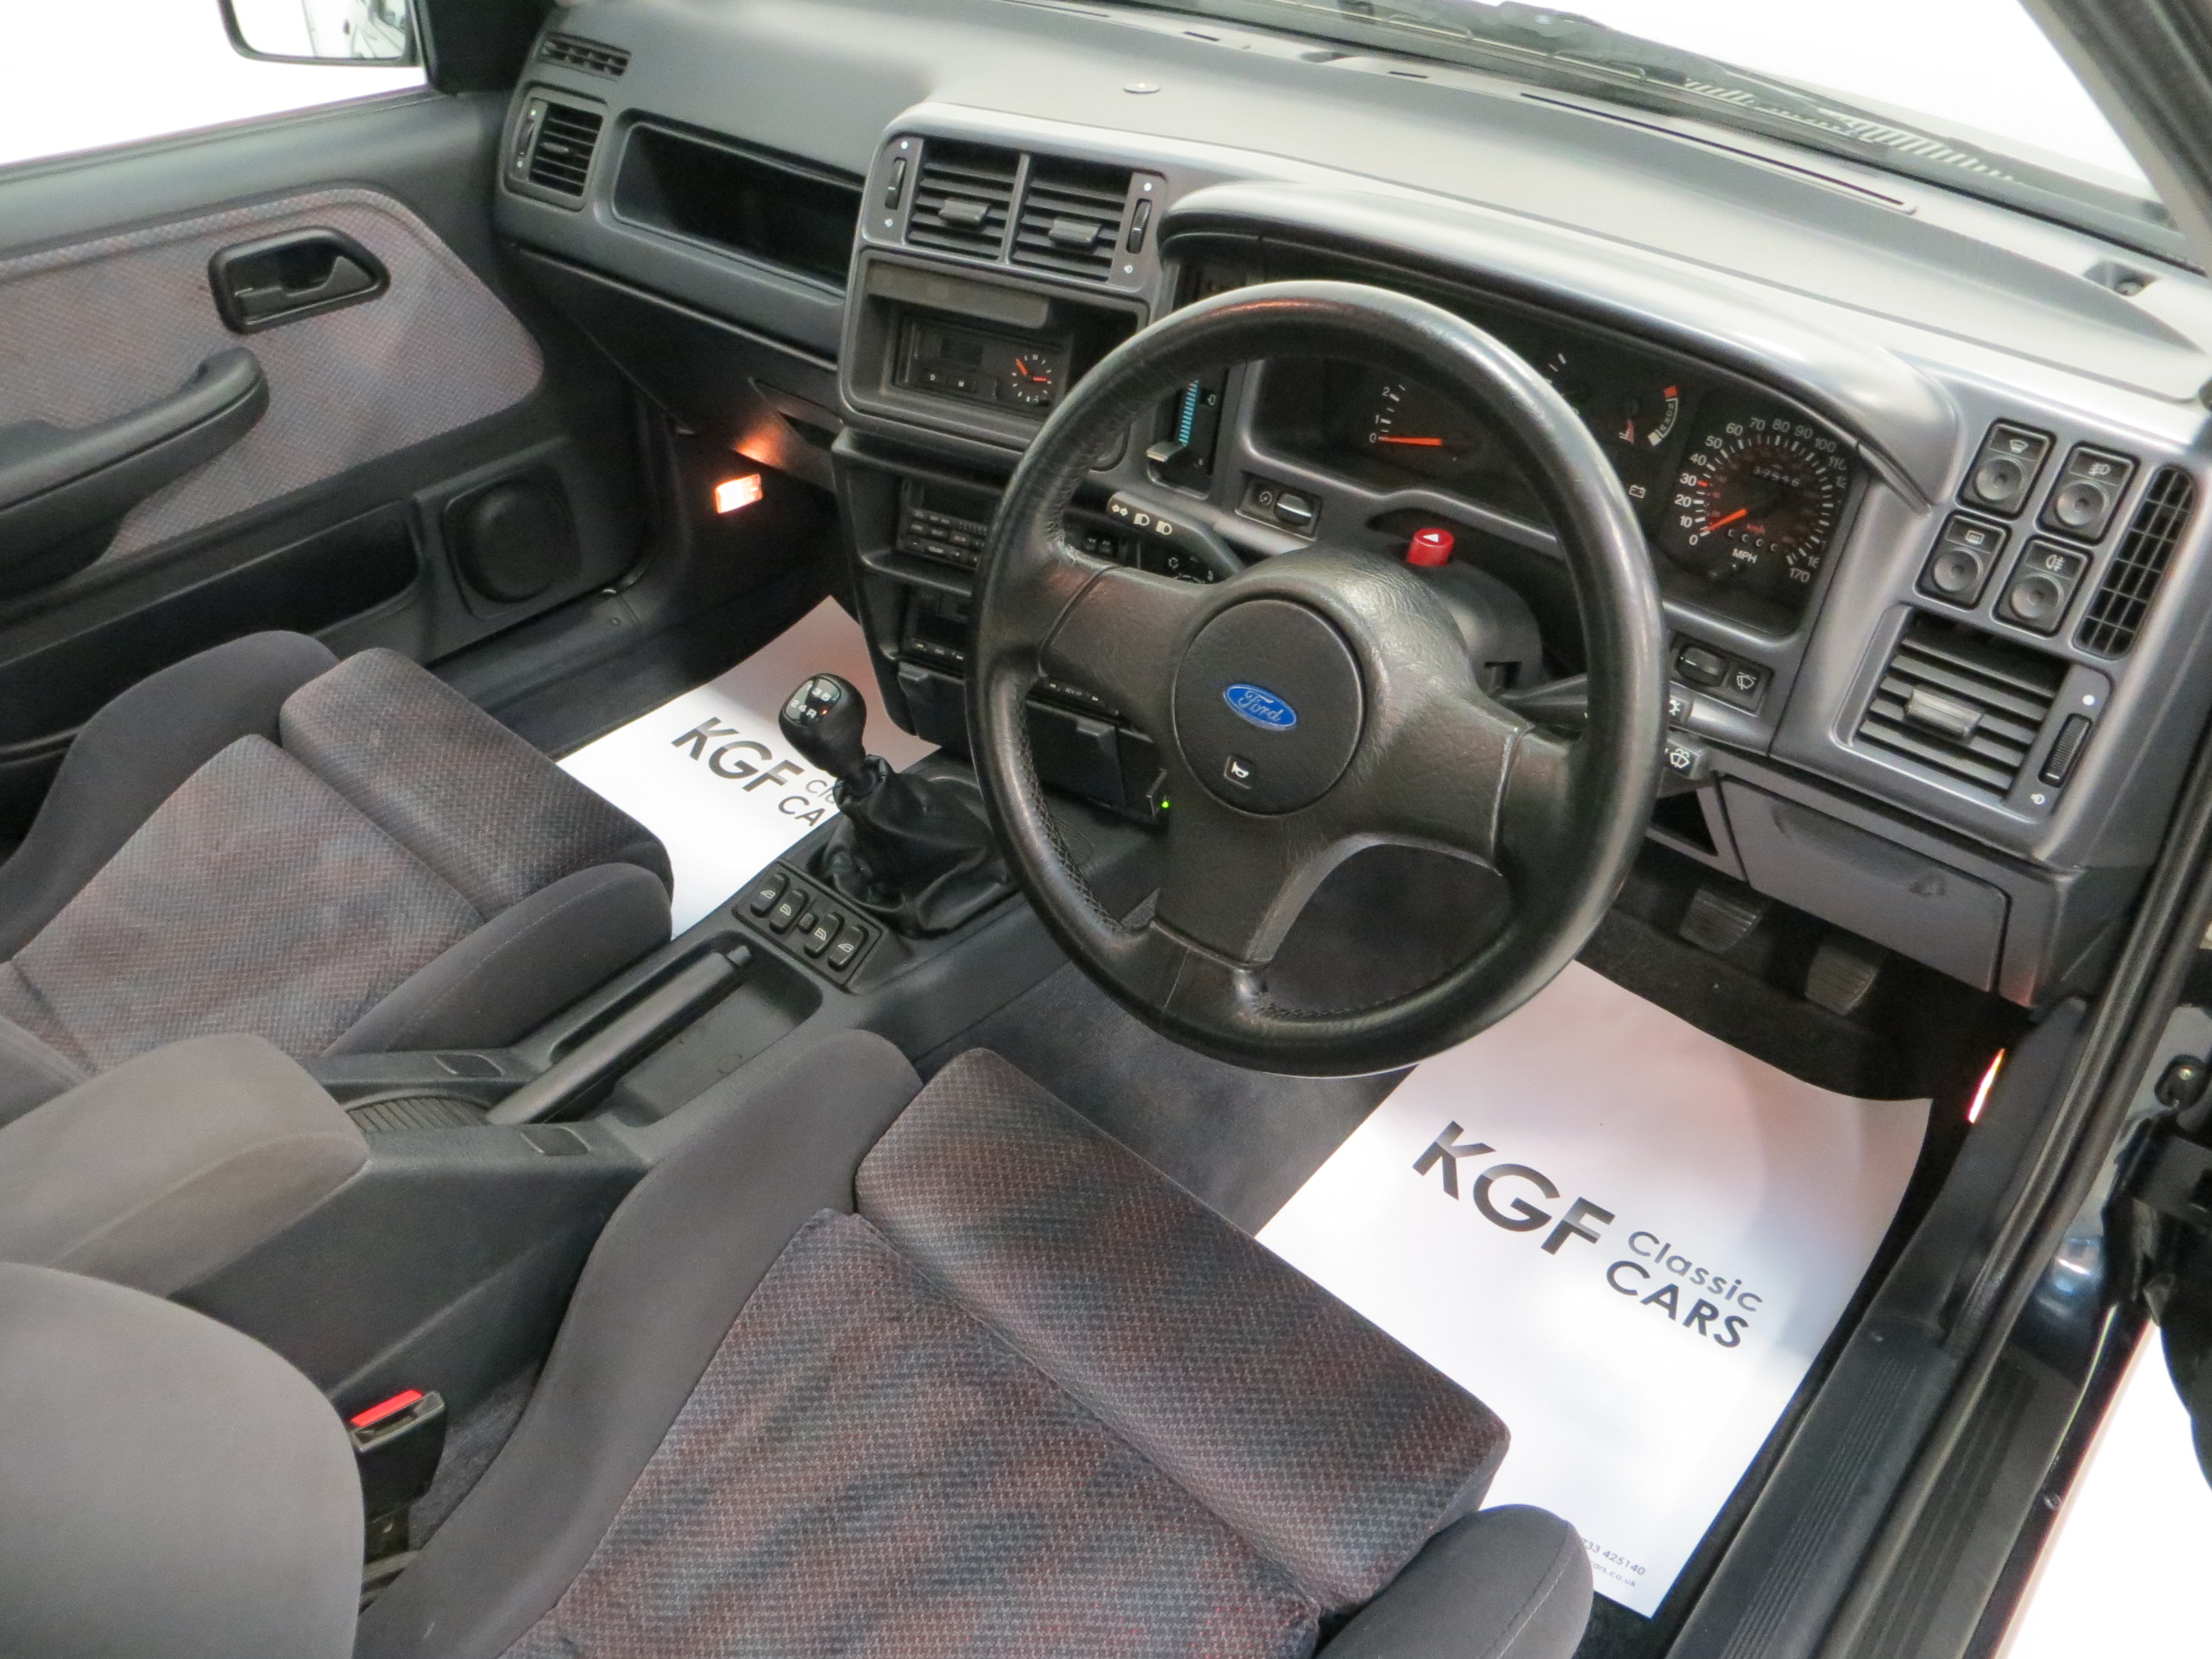 A Ford Sierra Sapphire RS Cosworth 37,516 Miles, SOLD!, PE1